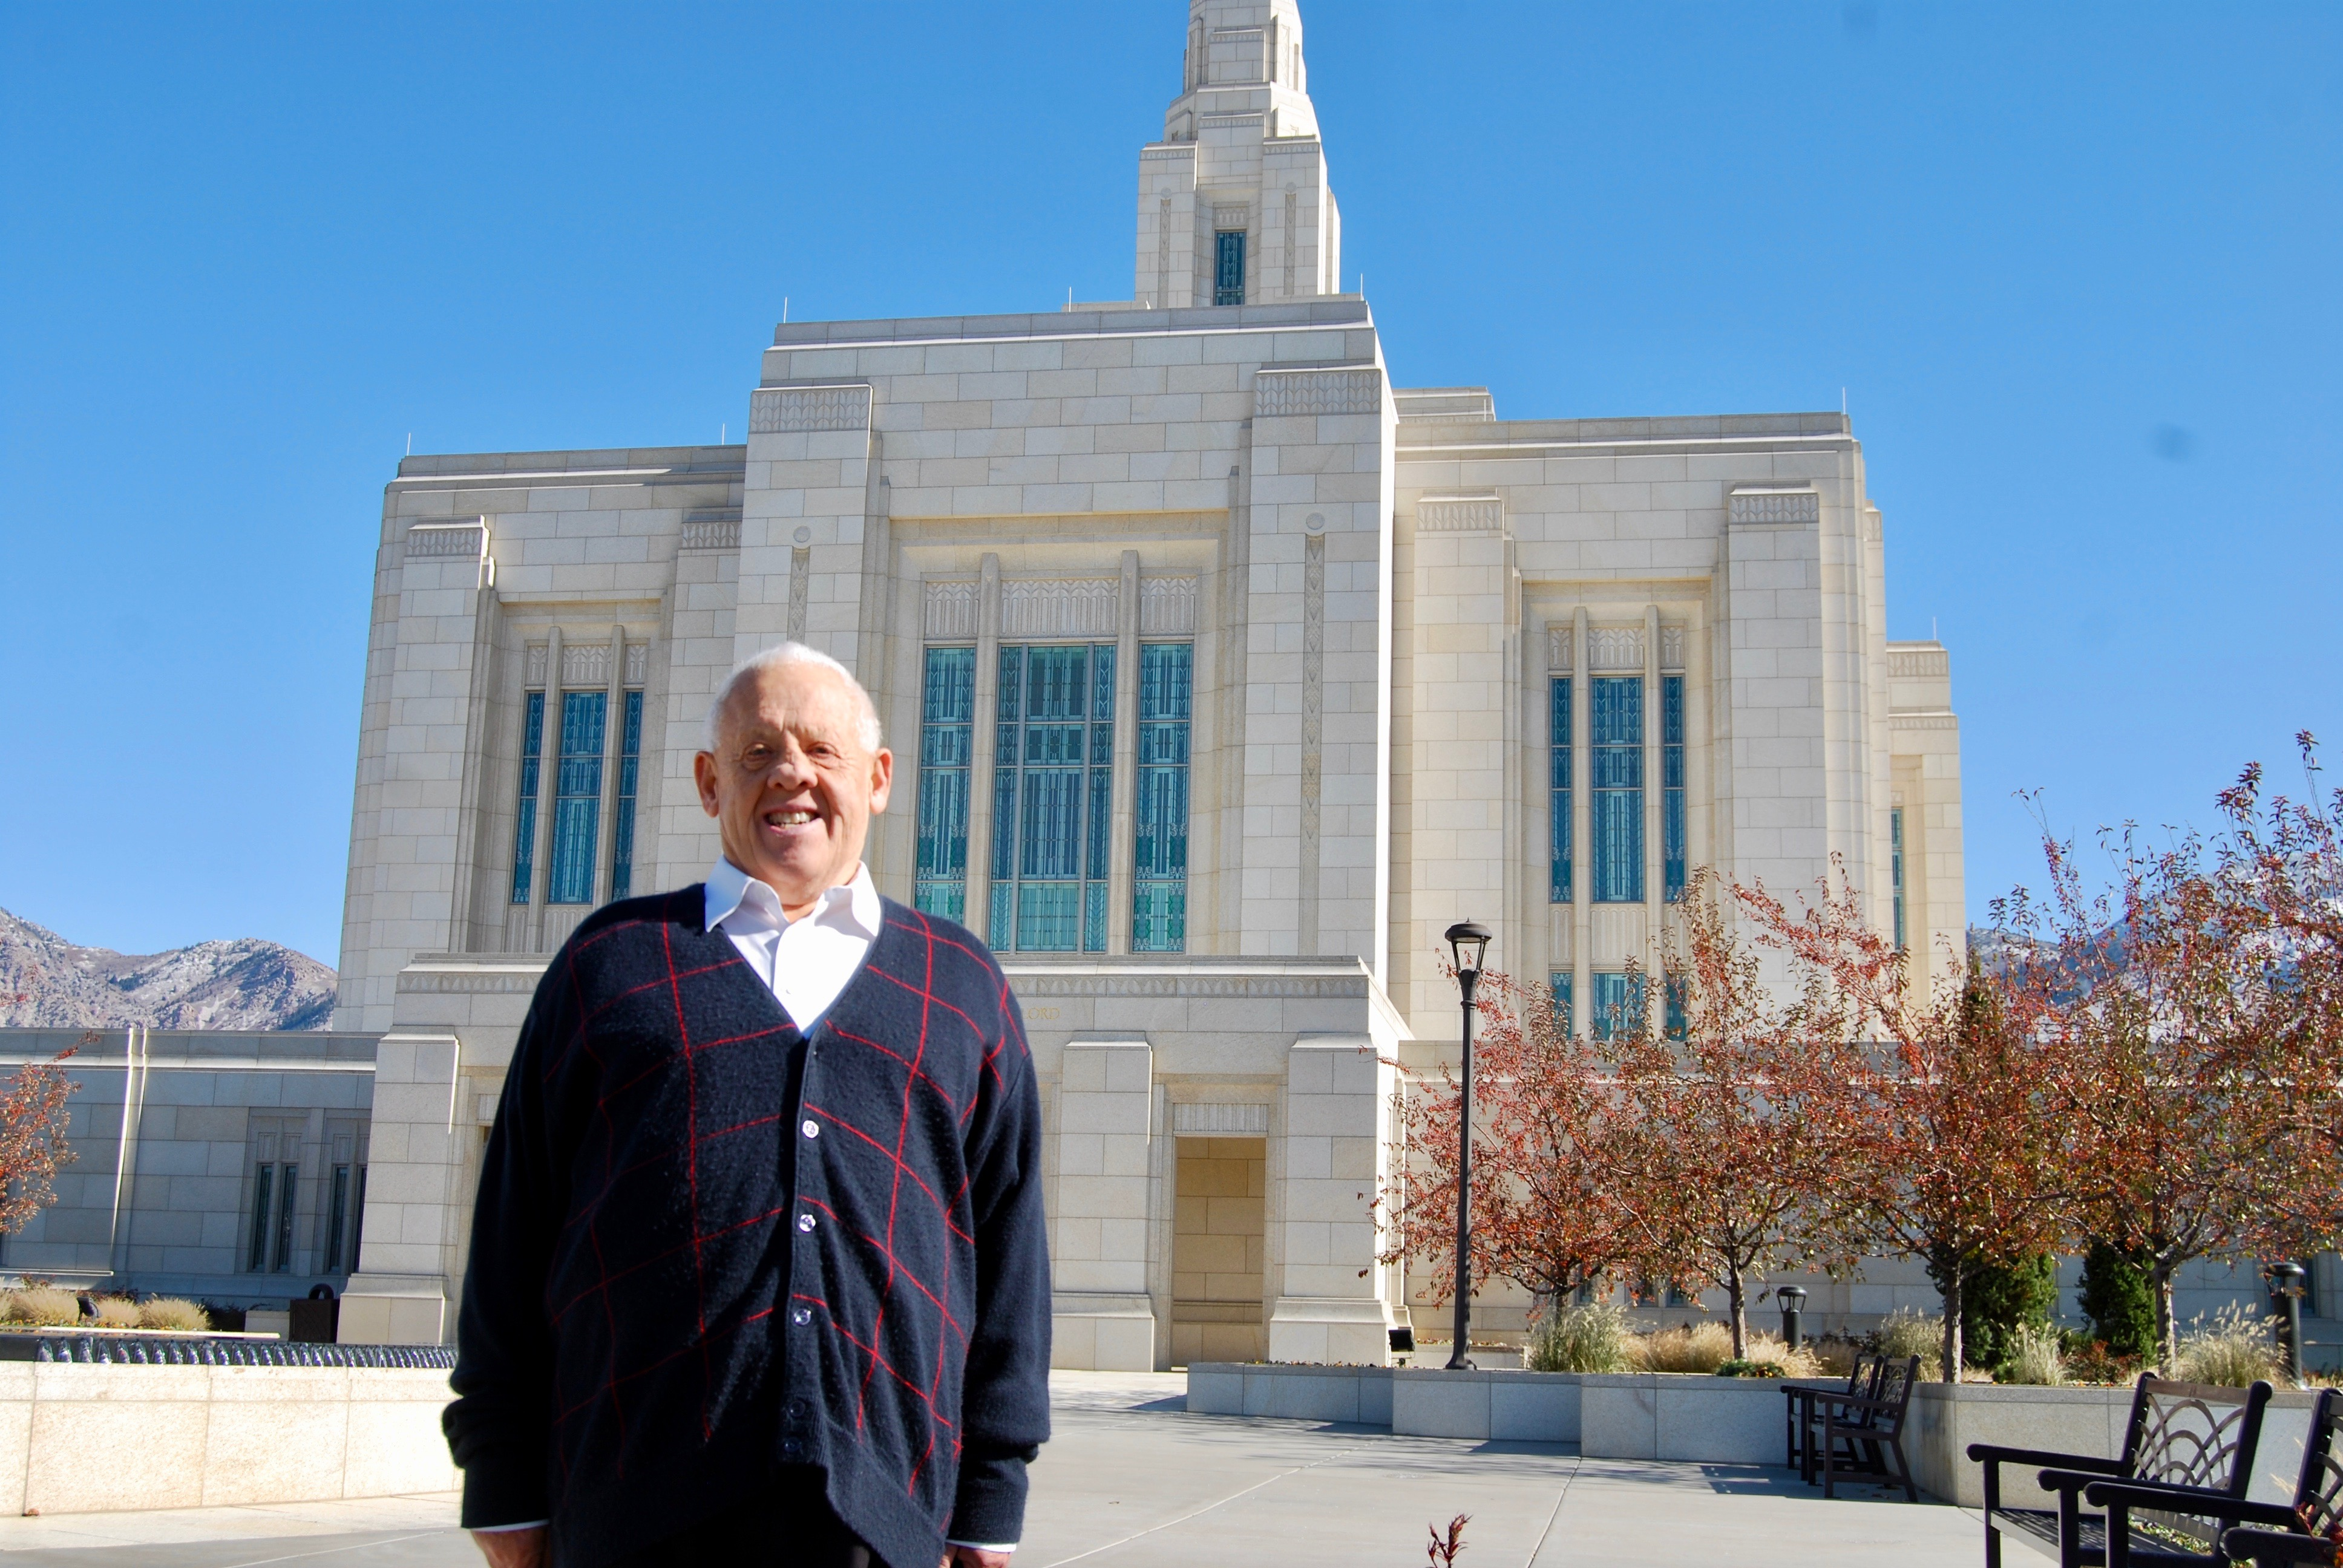 Dennis Preece stands outside the Ogden Utah Temple after attending his daily two endowment sessions on Wednesday, Oct. 30, 2019.